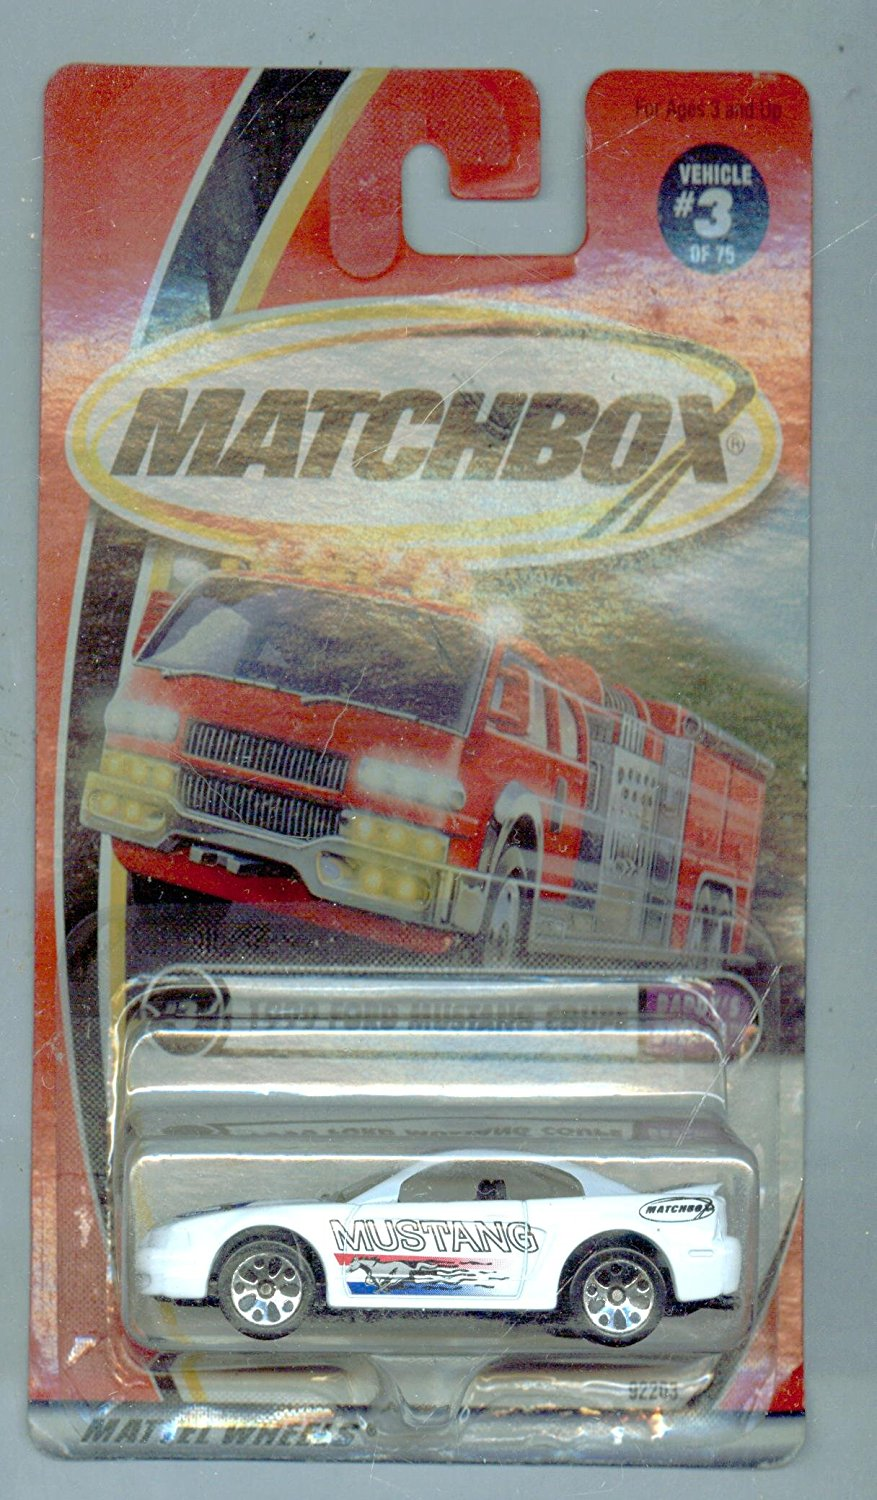 2001-3 75 Daddy's Dreams 1999 Ford Mustang Coupe 1:64 Scale, By Matchbox by